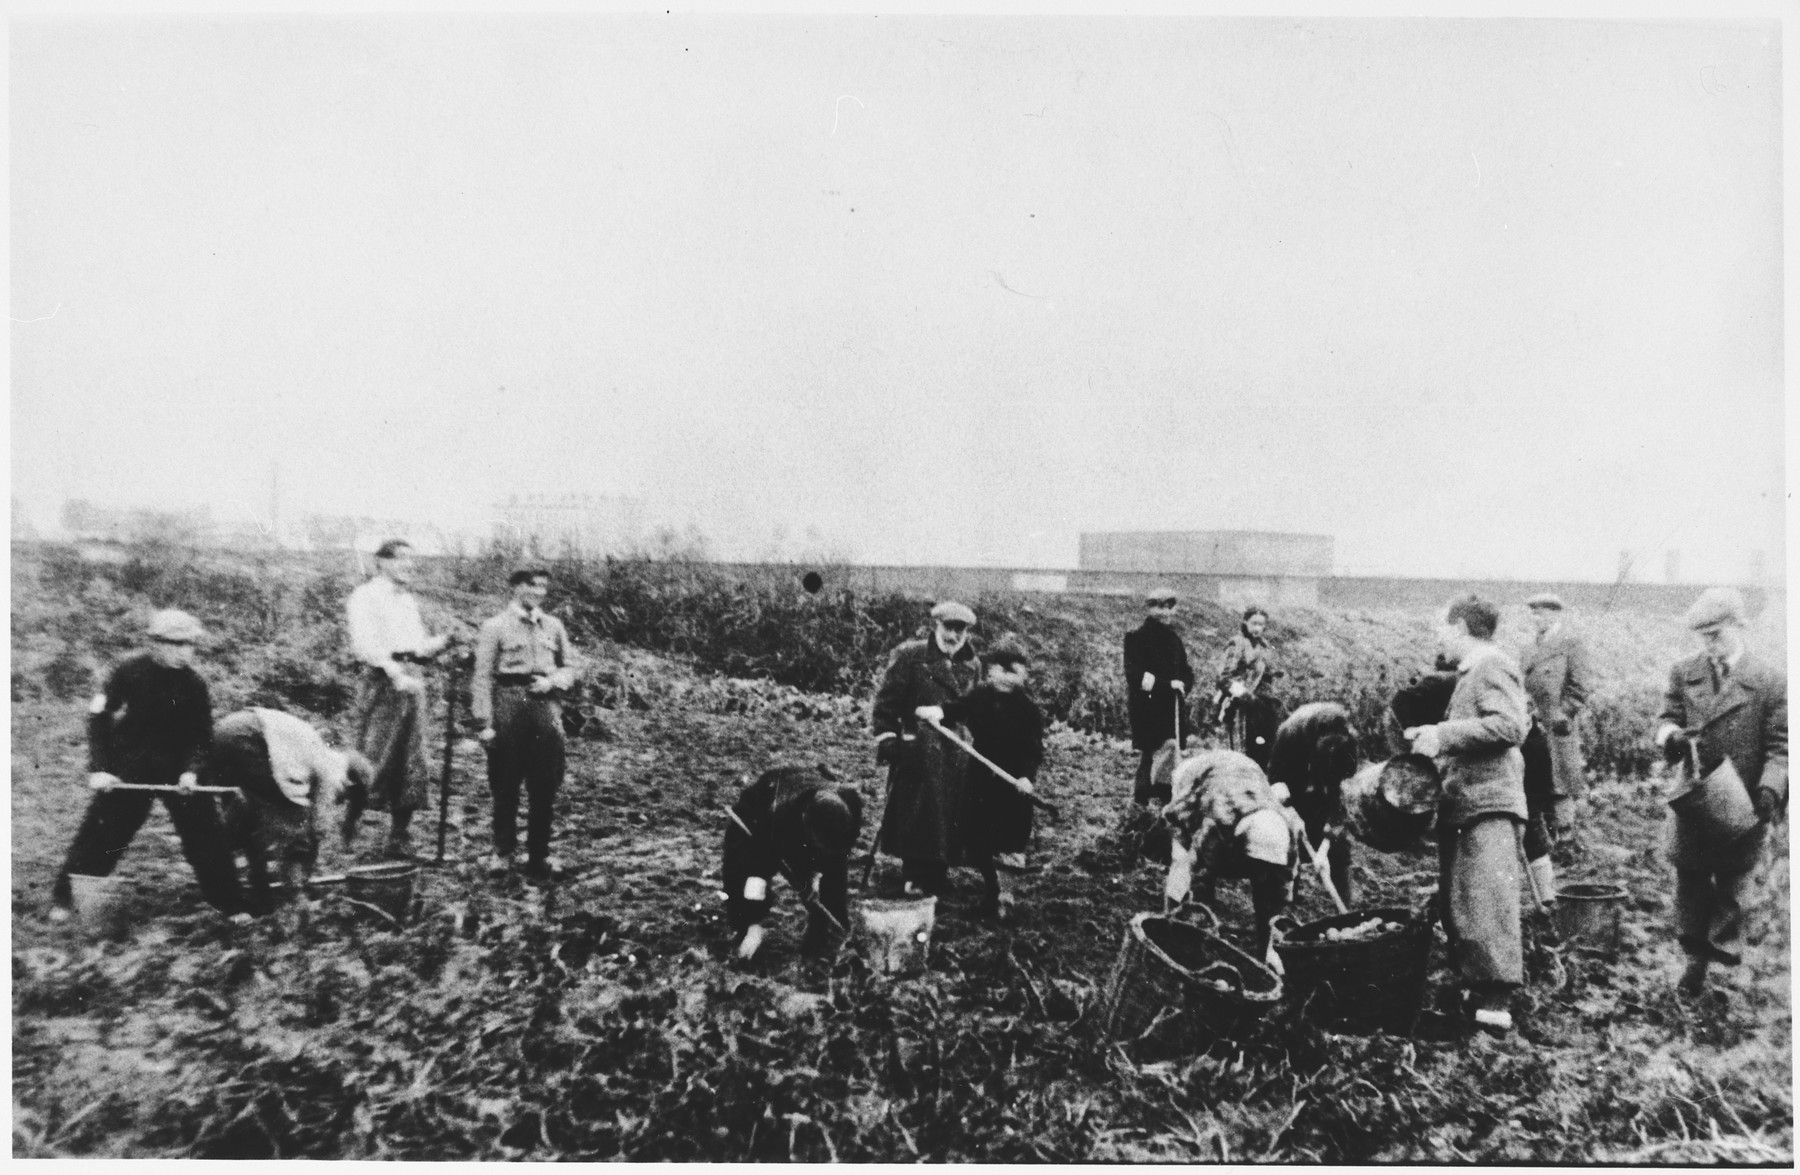 Jews wearing armbands hoe a field in what probably is the Warsaw ghetto.